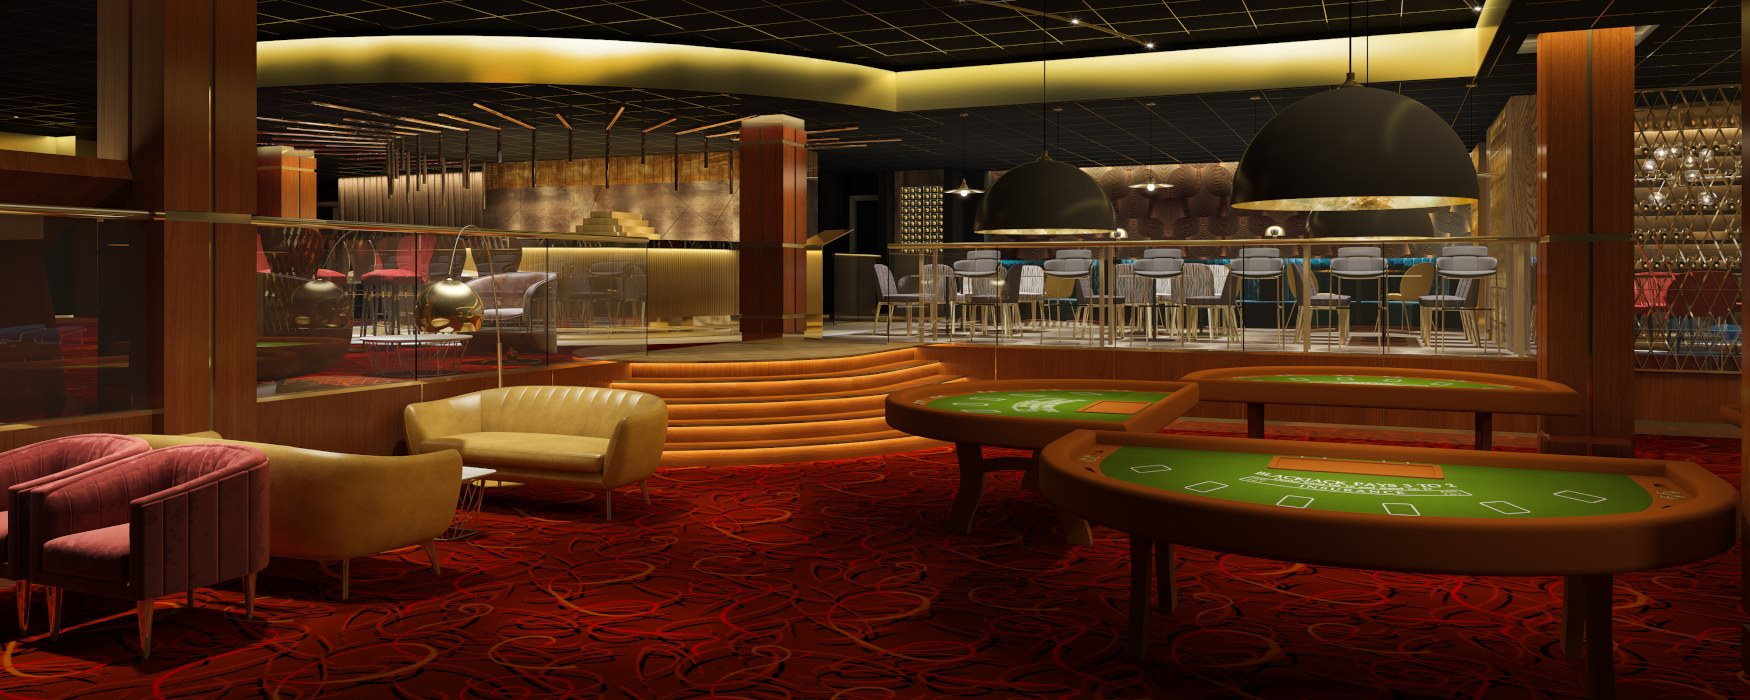 Artist impression of Napoleons Casino, Bar & Restaurant